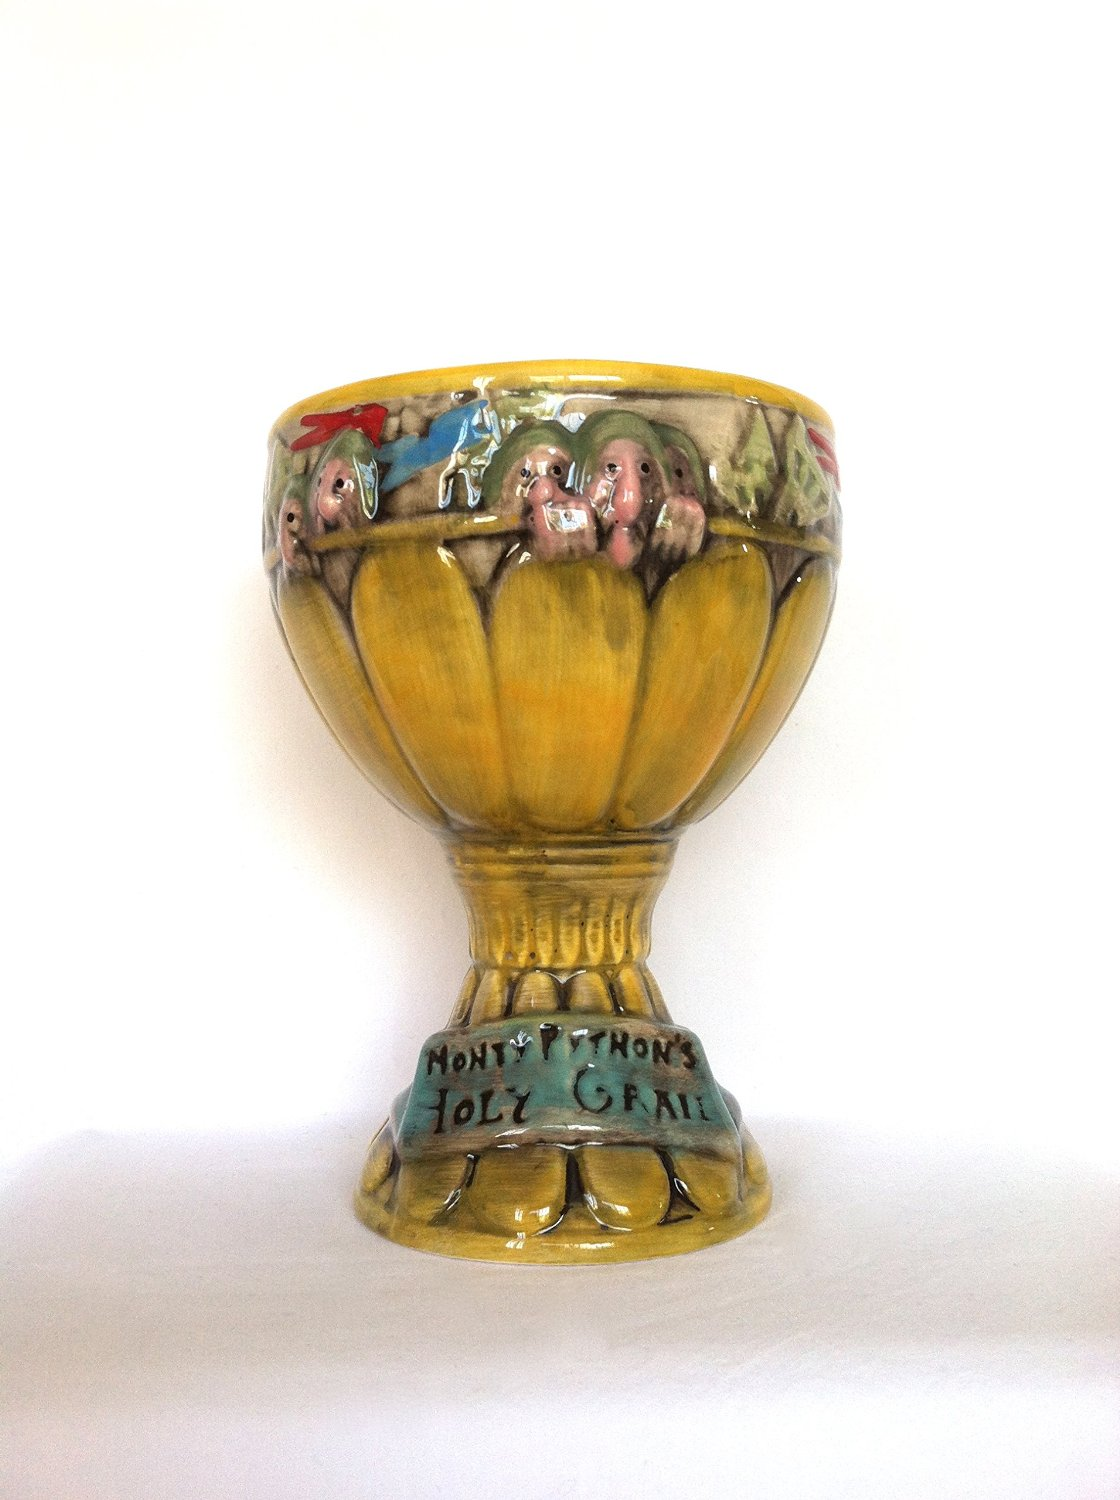 Monty Python S Holy Grail Chalice The Daily Pint